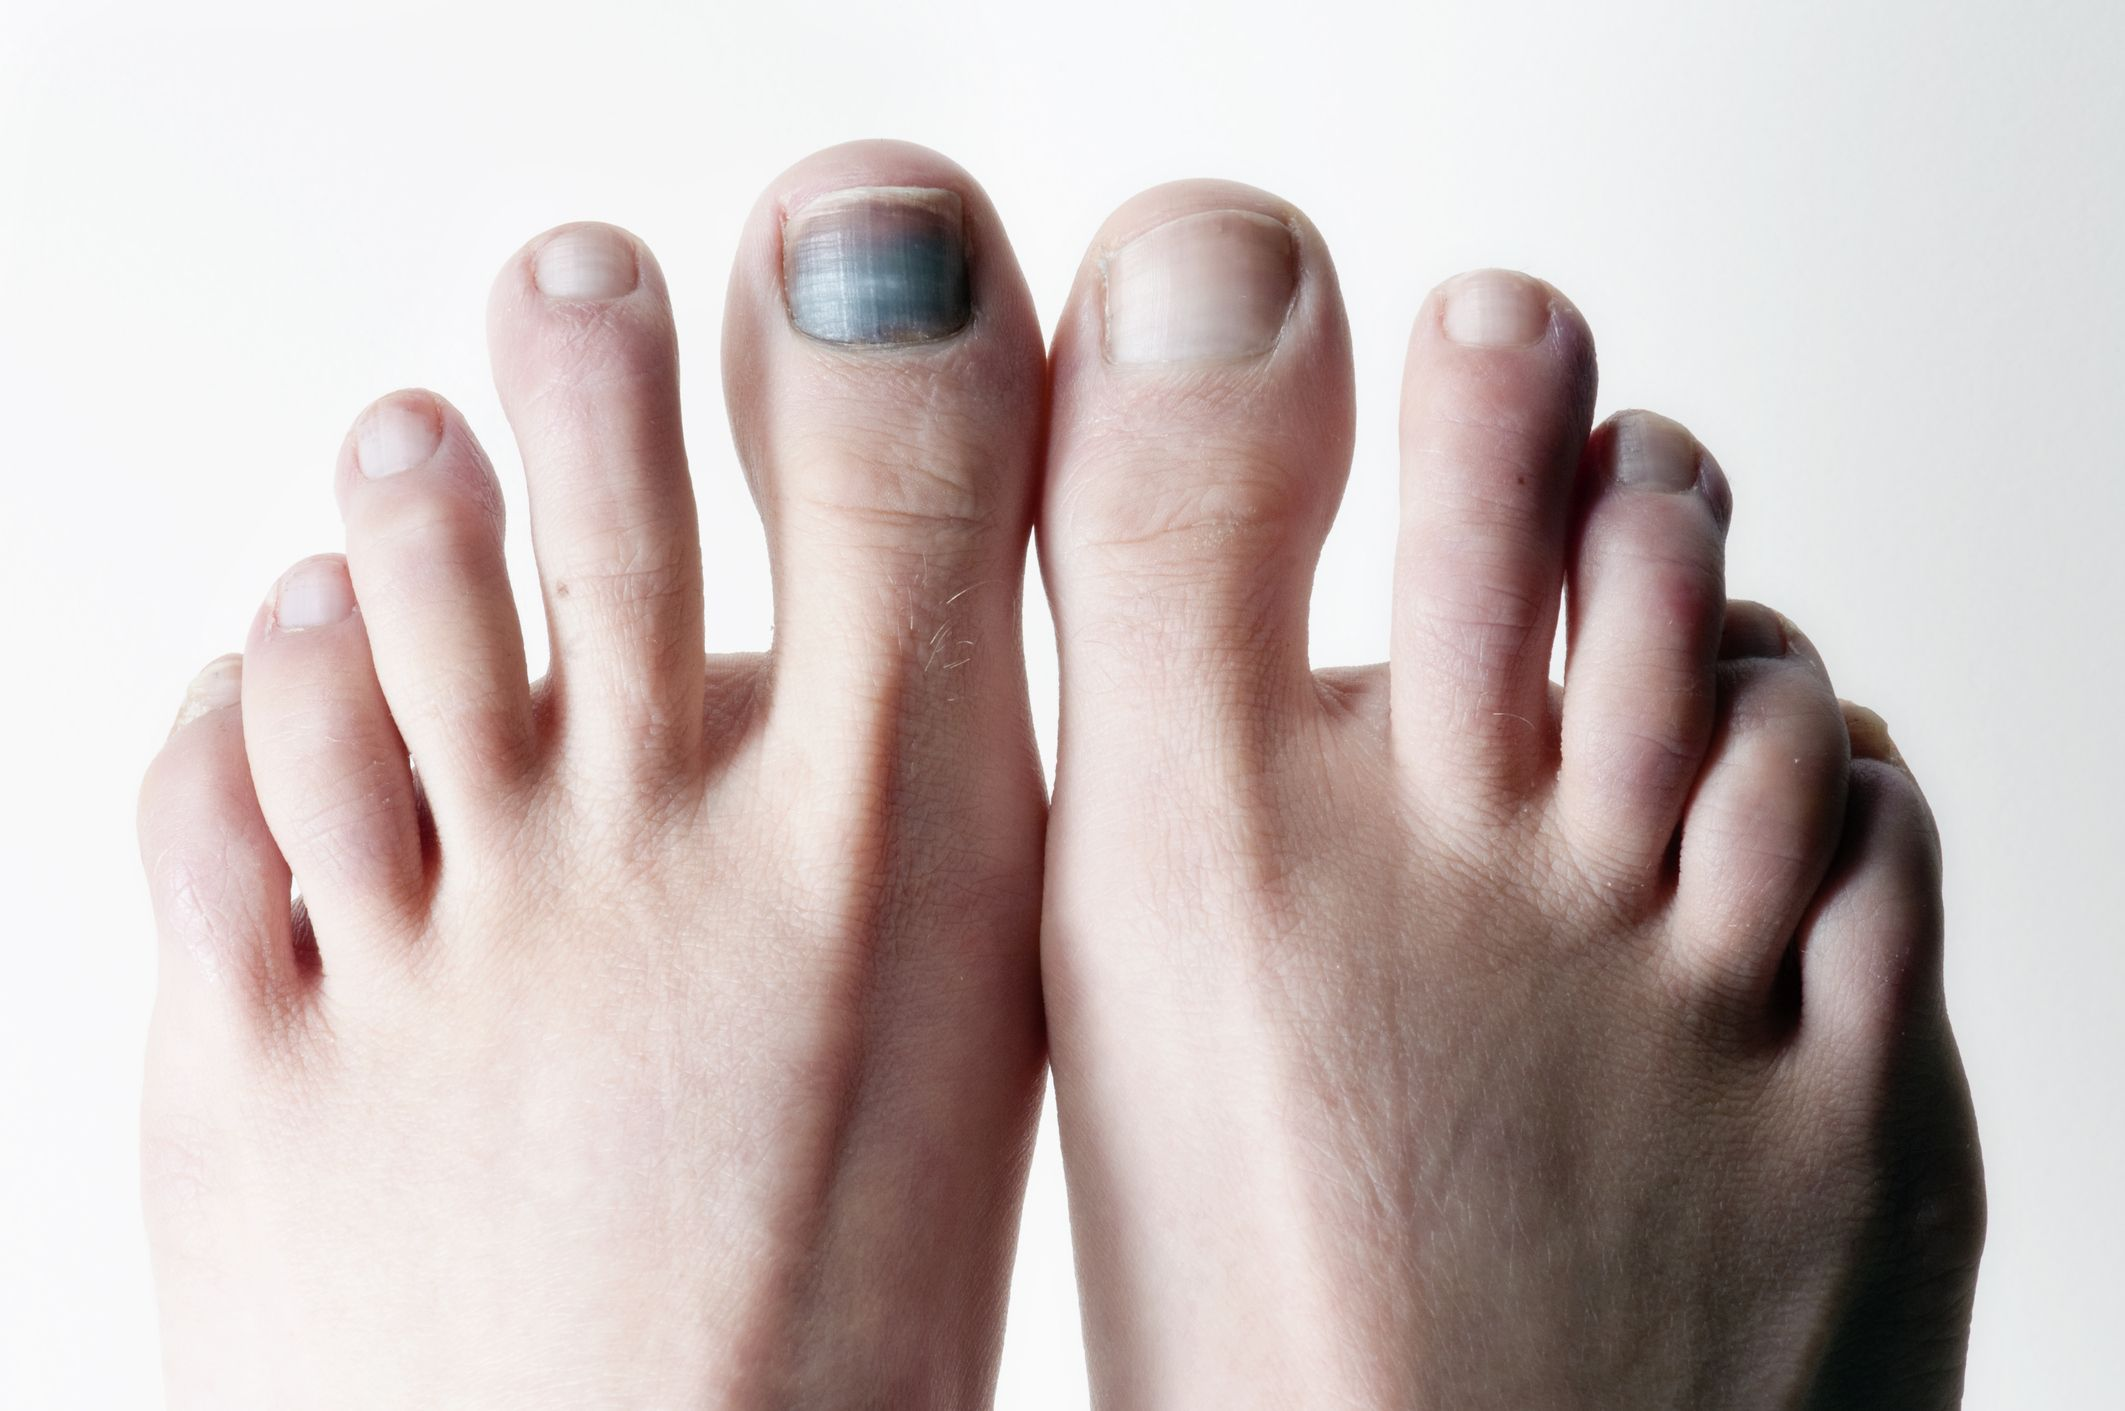 Black Toenails Running Subungual Hematoma And Bruised Toenails